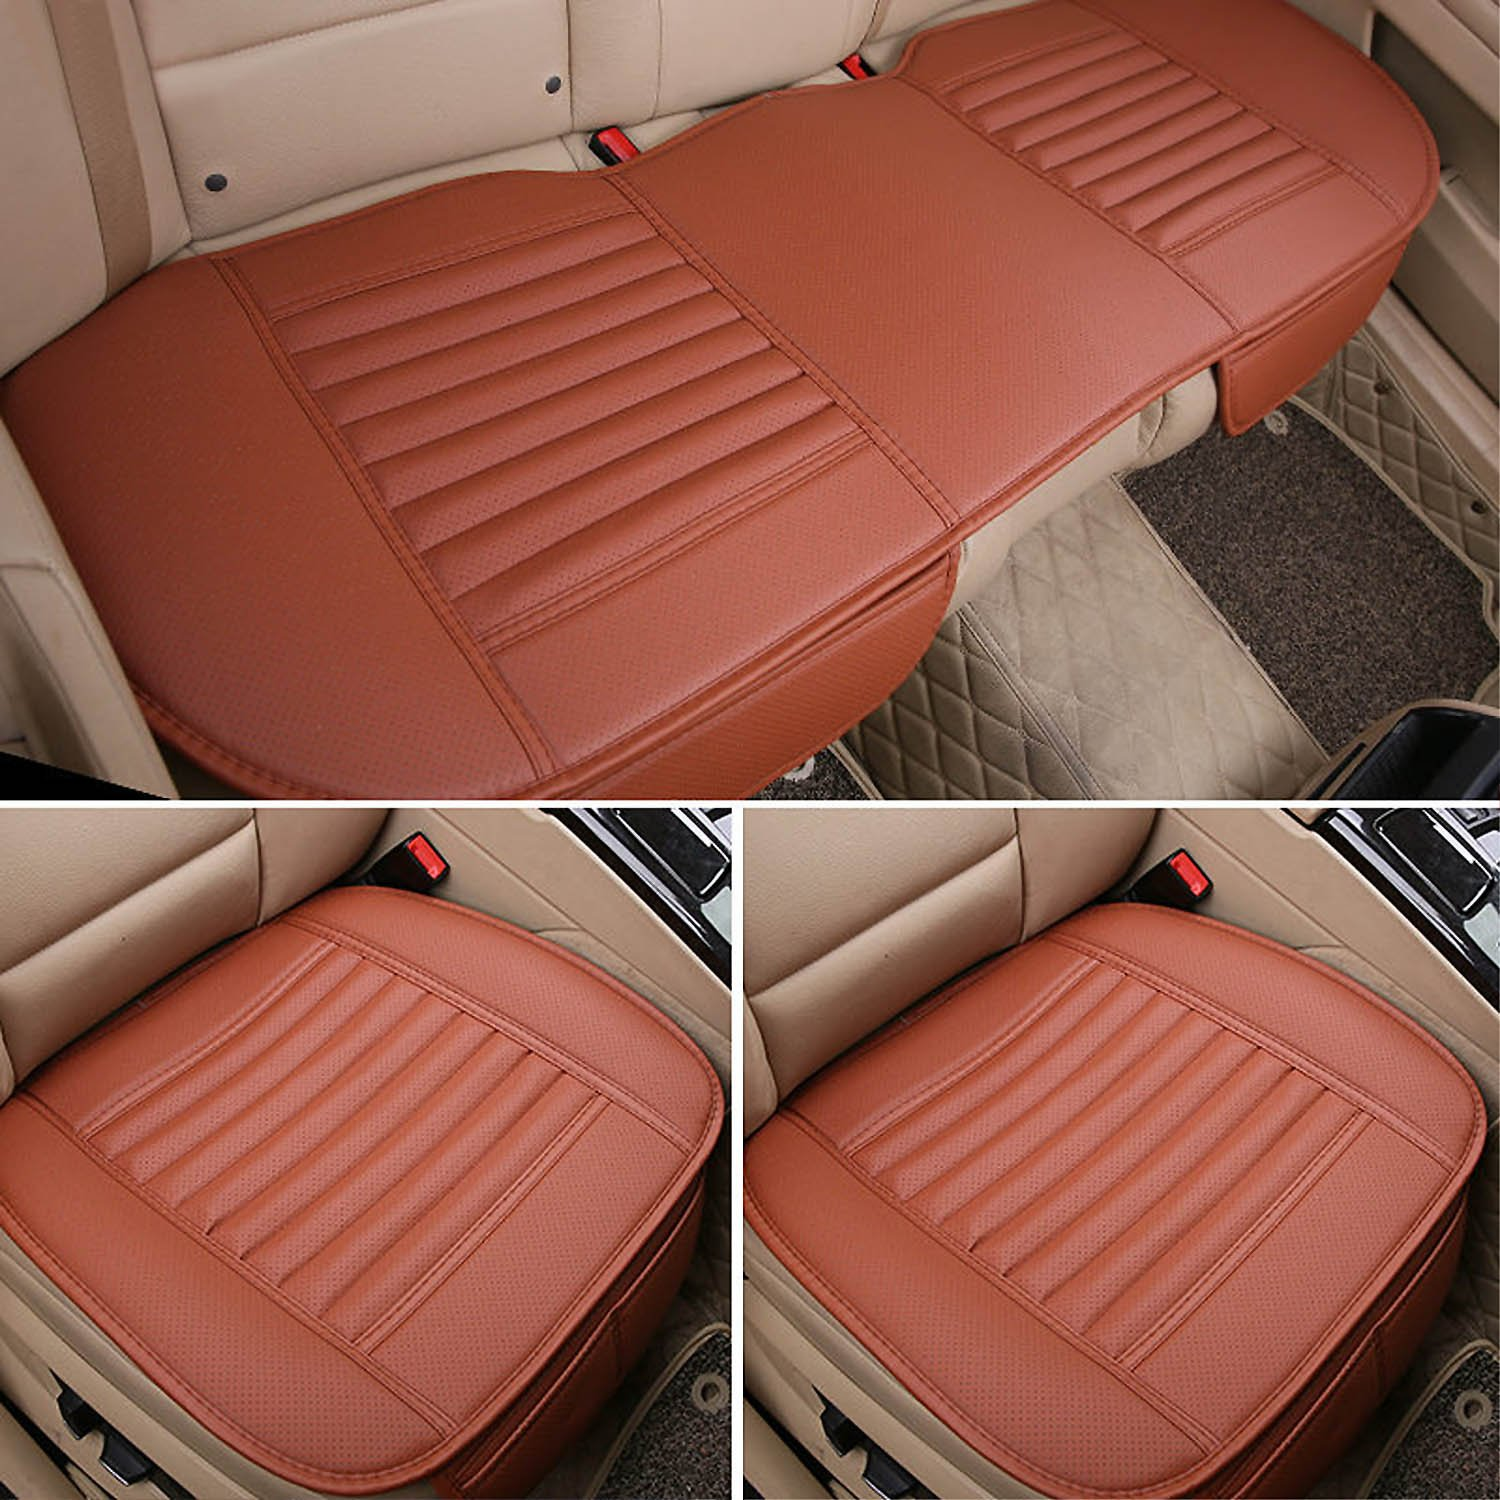 3Pcs Car Seat Cover Universal Non Slip Cushion Pad Mat for Auto Interior/Office Chair with PU Leather Bamboo Charcoal (Brown) by AUTOPDR